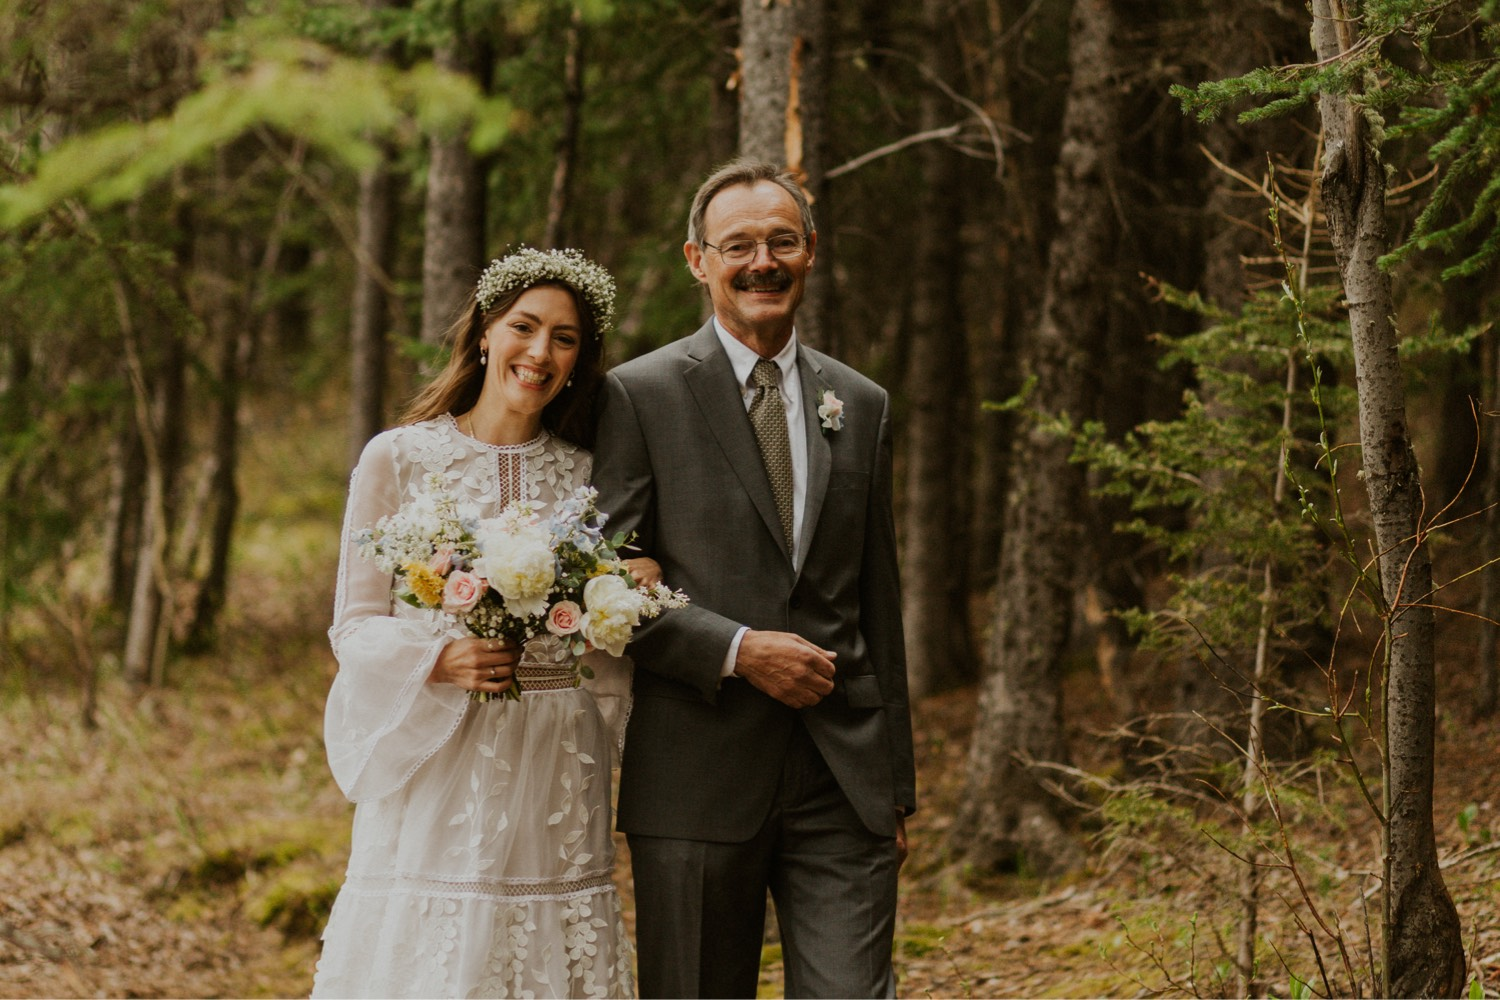 A Kananaskis Lake Elopement in the beautiful Canadian Rockies photo of bride walking down the forest with her dad